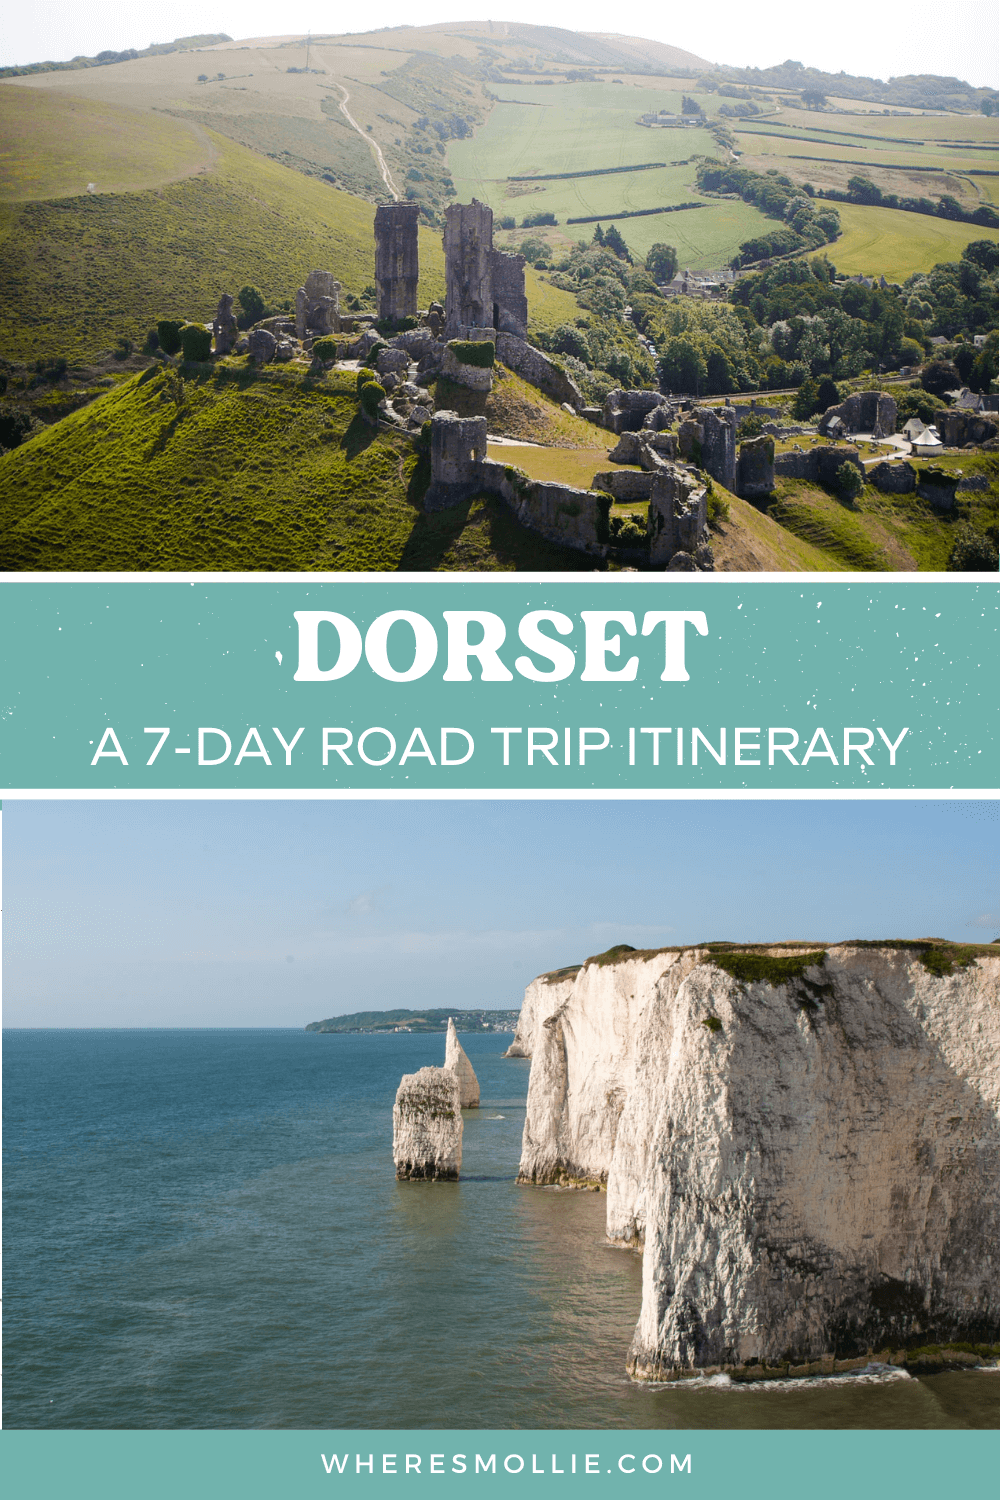 A 7-day Dorset road trip itinerary